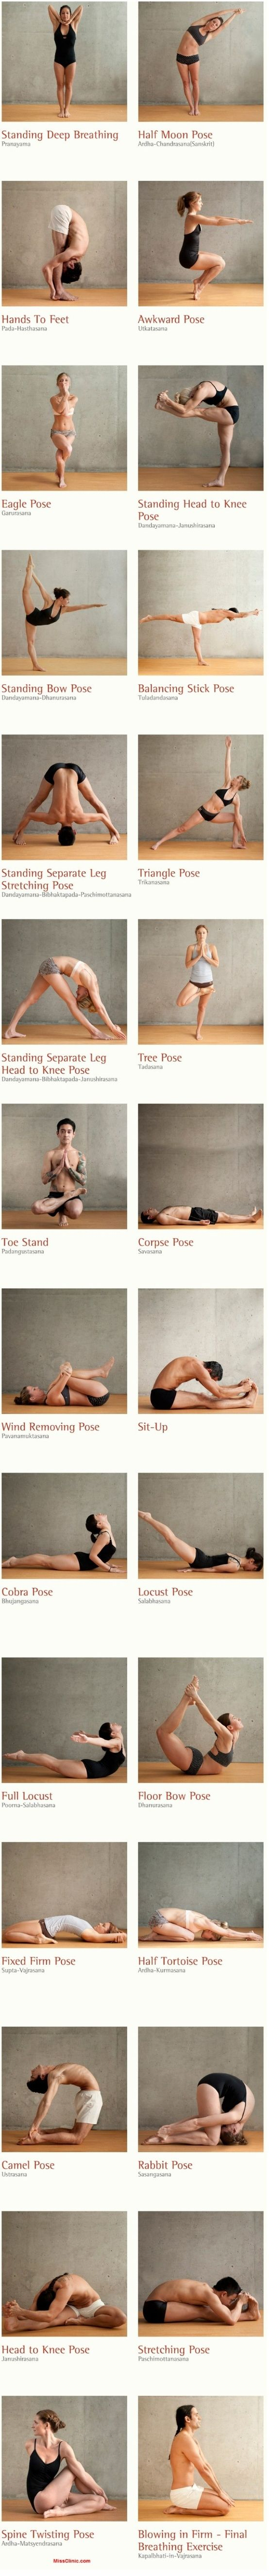 Yoga poses that strenghten your body. Caviar is full with vitamin A, D, B2, B5, Omega 3, fosfor, zink and so many other healthy stuff! Caviar makes you healthy from the inside www.blackcaviar.se